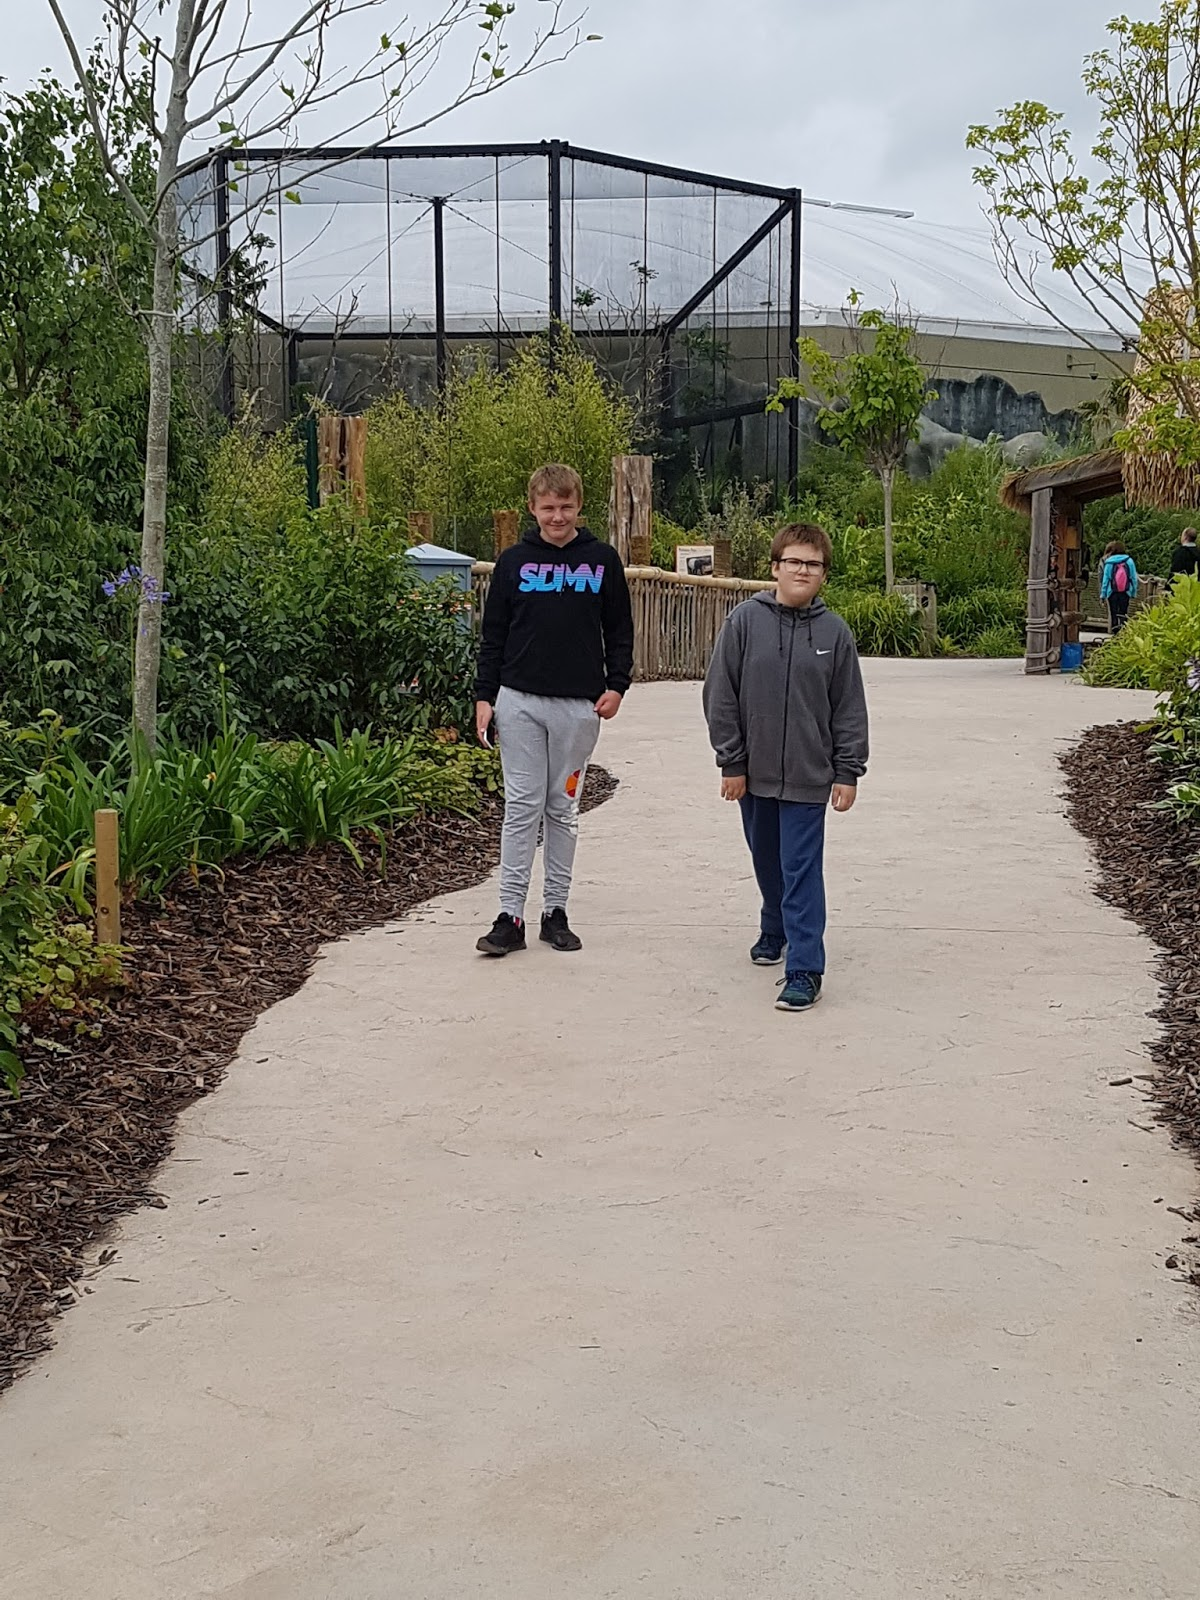 Ben and Ryan walking along a walkway between enclosures, no animals seen, no other people in photo showing how empty it was